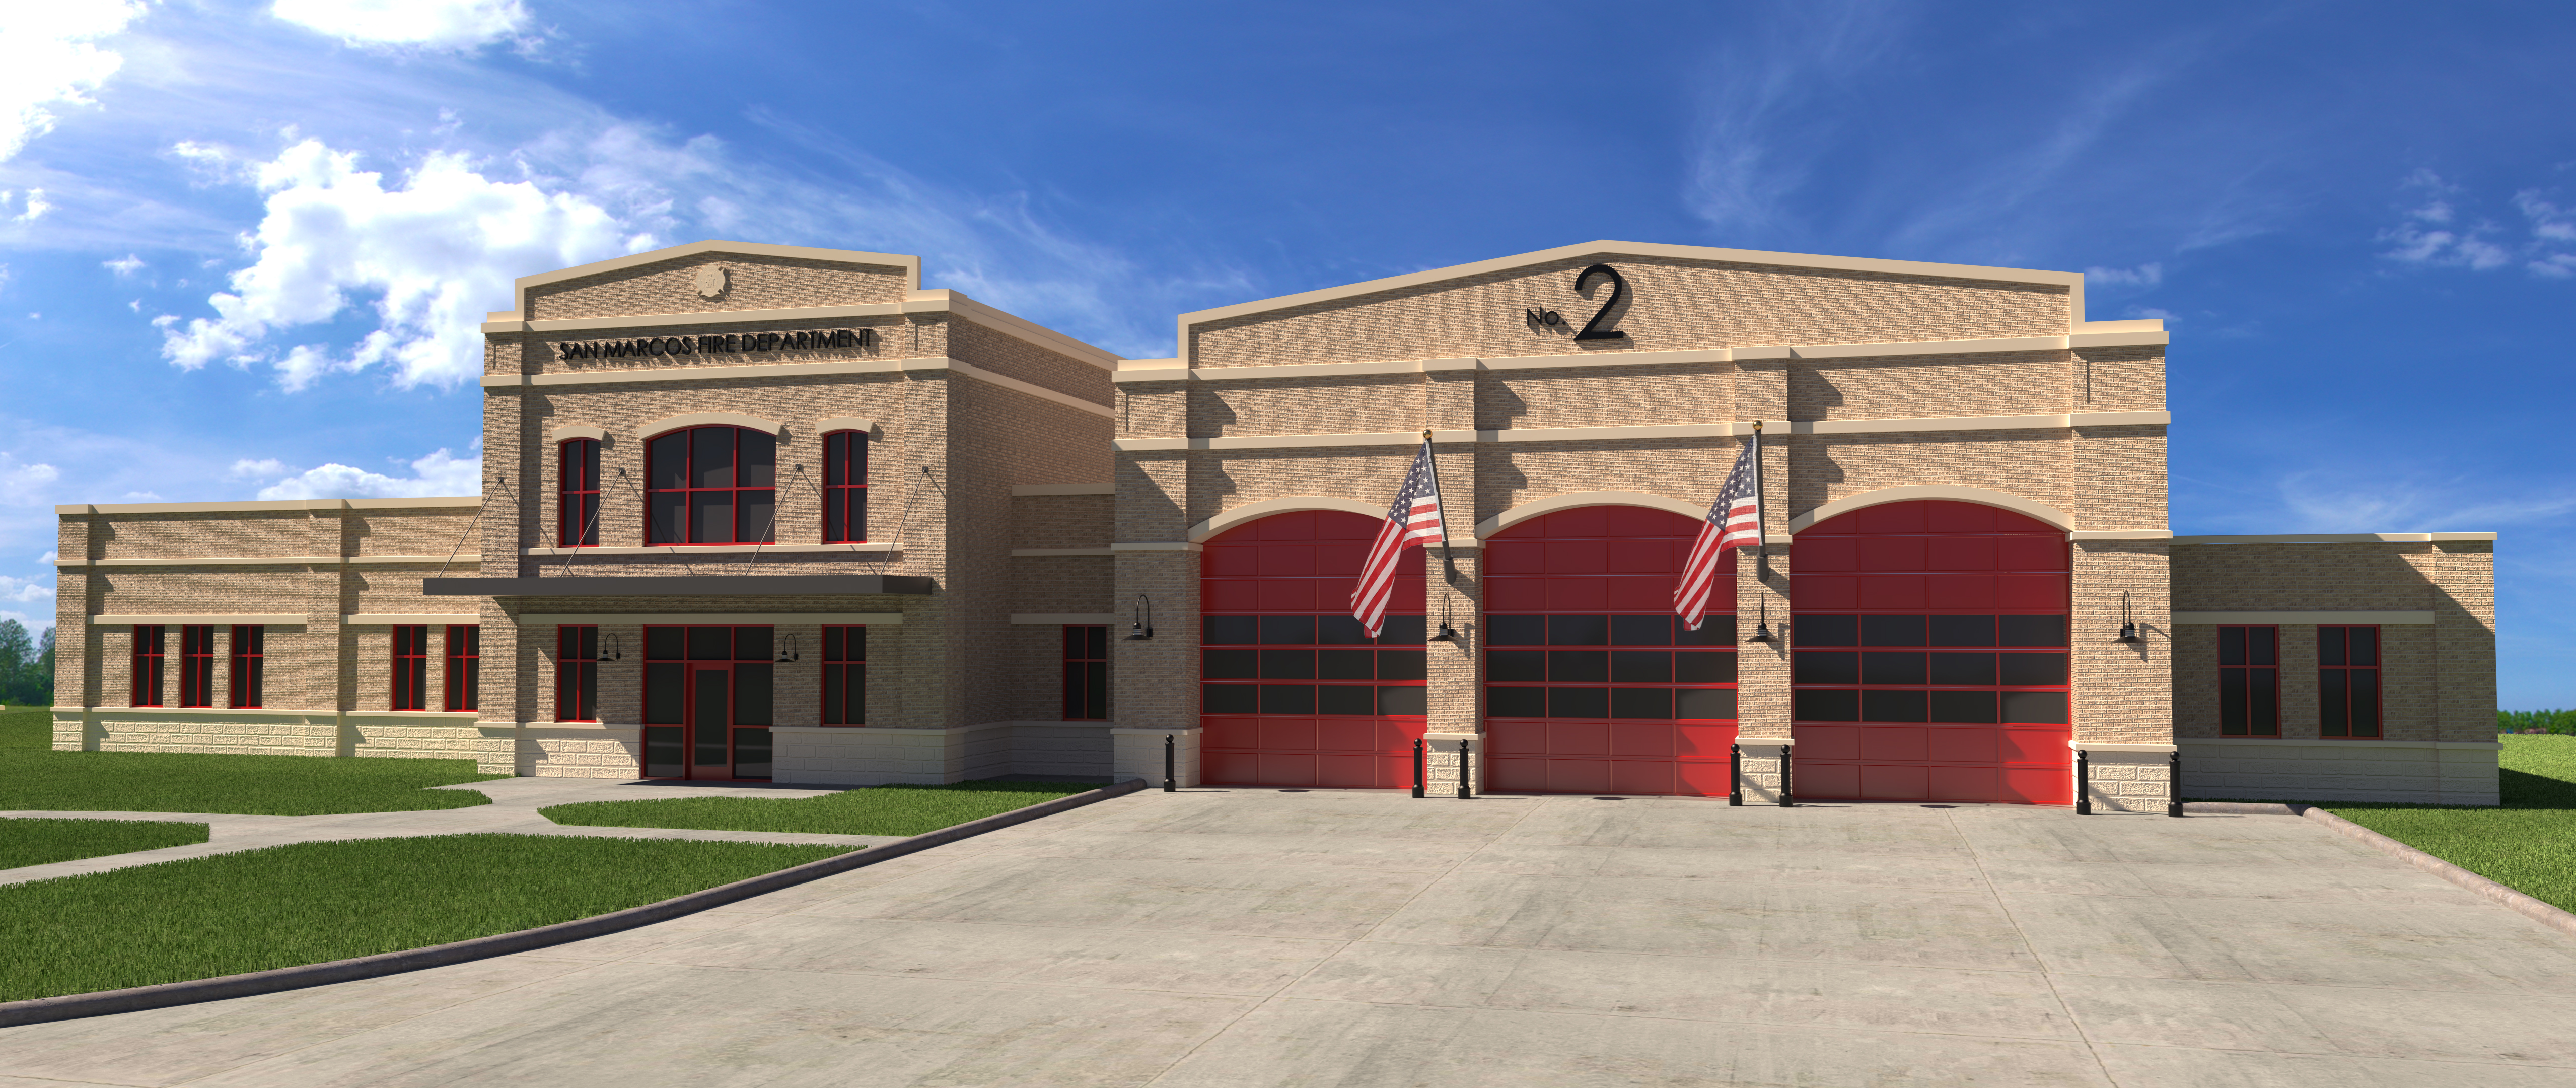 Fire Station 2 Rendering from the Front